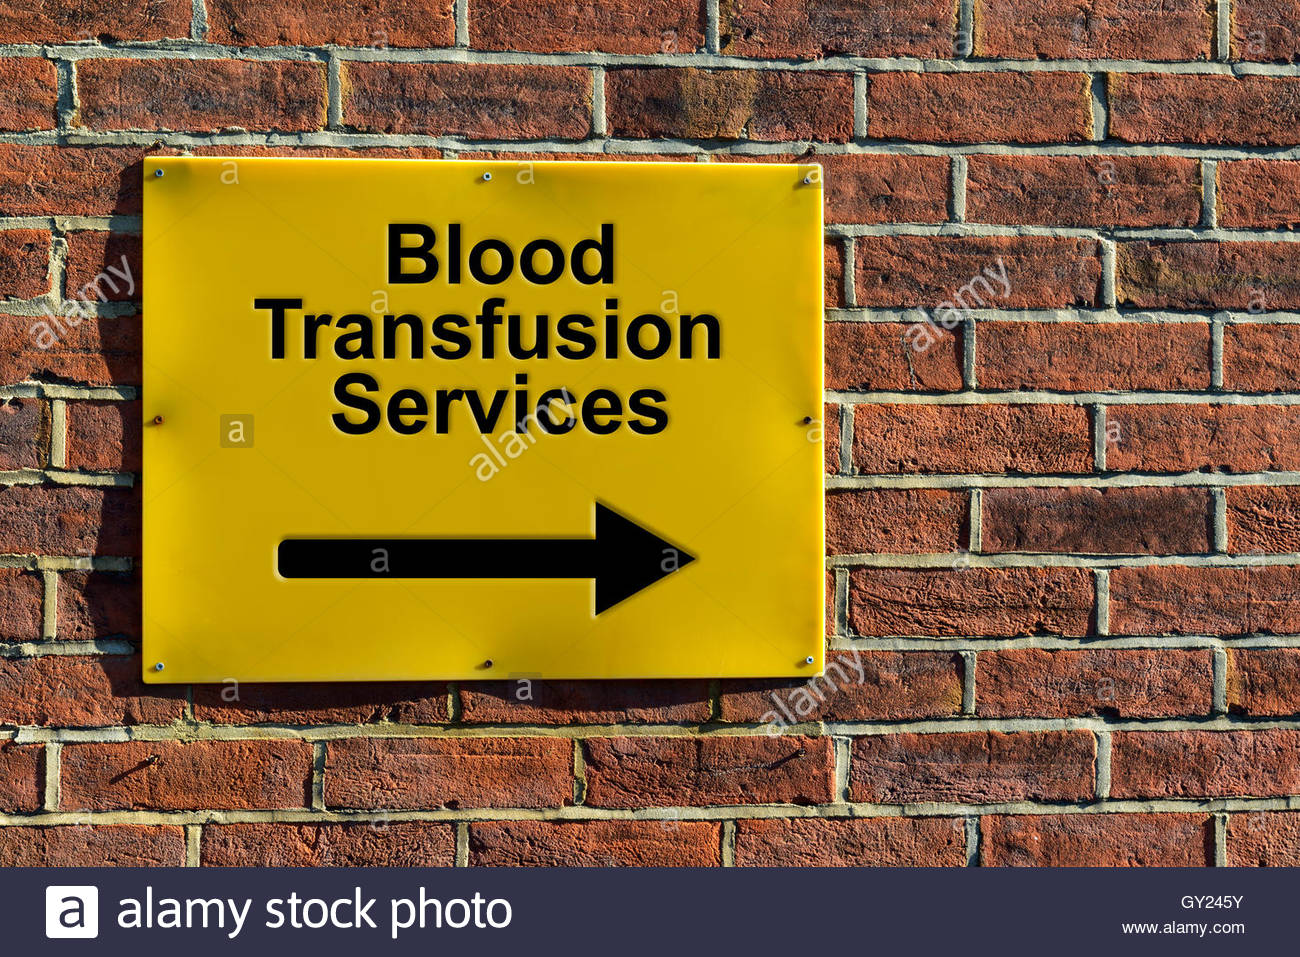 Blood Transfusion Services, NHS wall mounted direction sign. - Stock Image